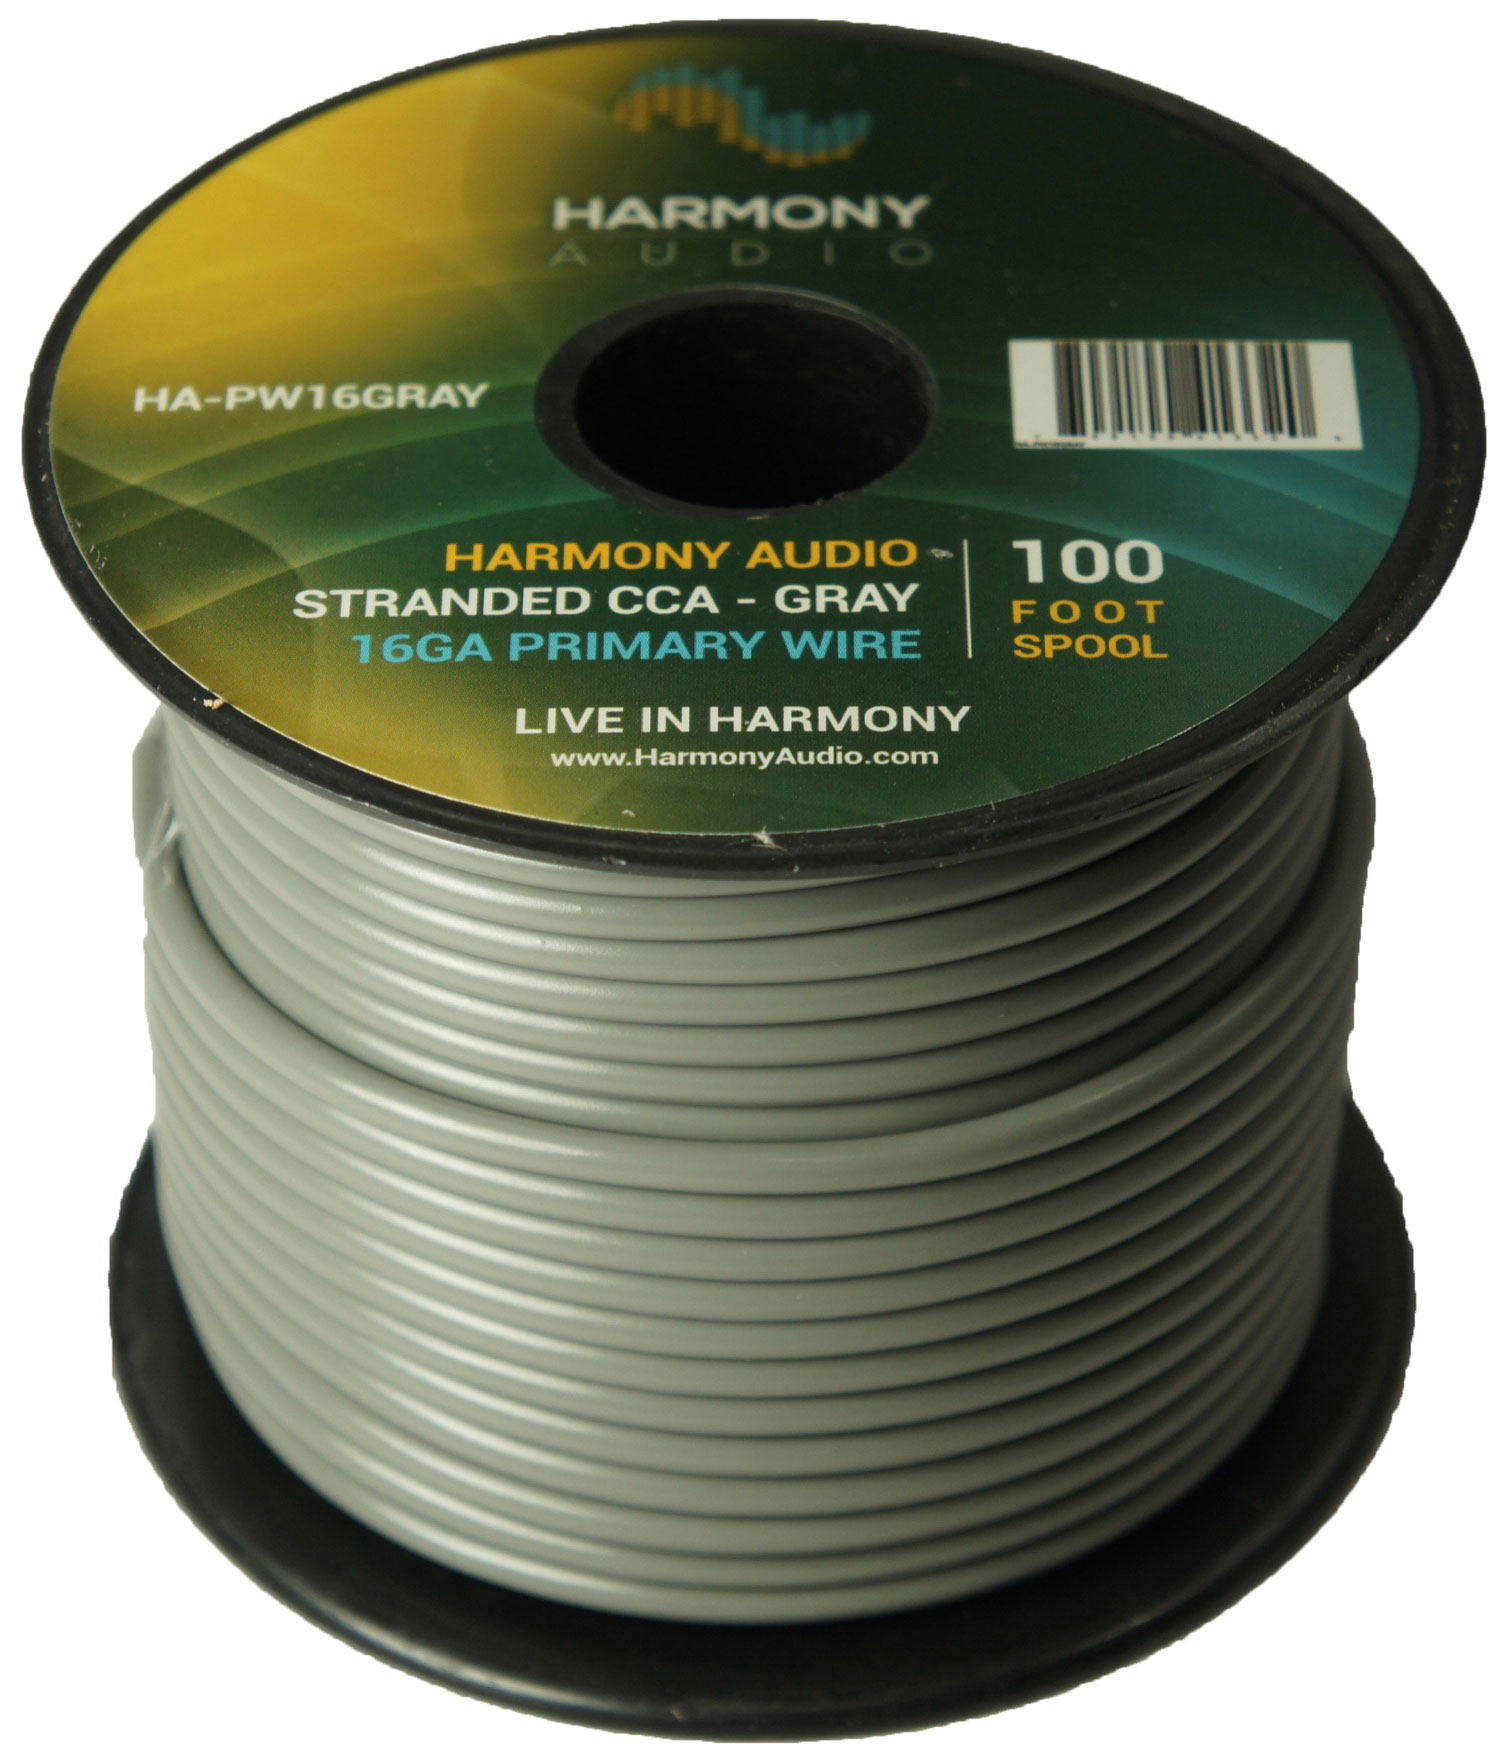 Harmony Audio HA-PW16GRAY Primary Single Conductor 16 Gauge Gray Power or Ground Wire Roll 100 Feet Cable for Car Audio / Trailer / Model Train / Remote